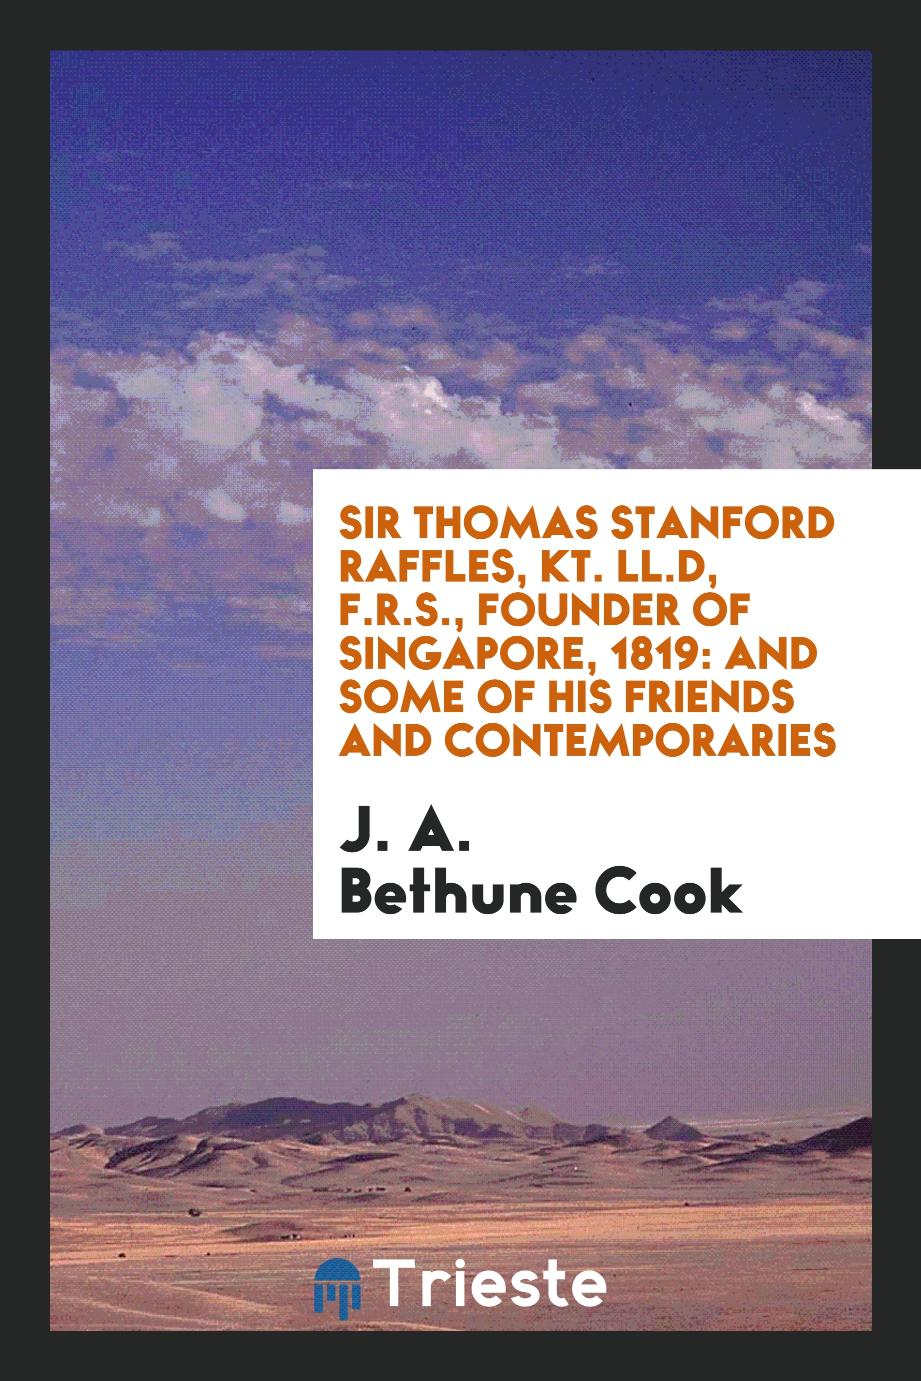 J. A. Bethune Cook - Sir Thomas Stanford Raffles, Kt. LL.D, F.R.S., founder of Singapore, 1819: and some of his friends and contemporaries